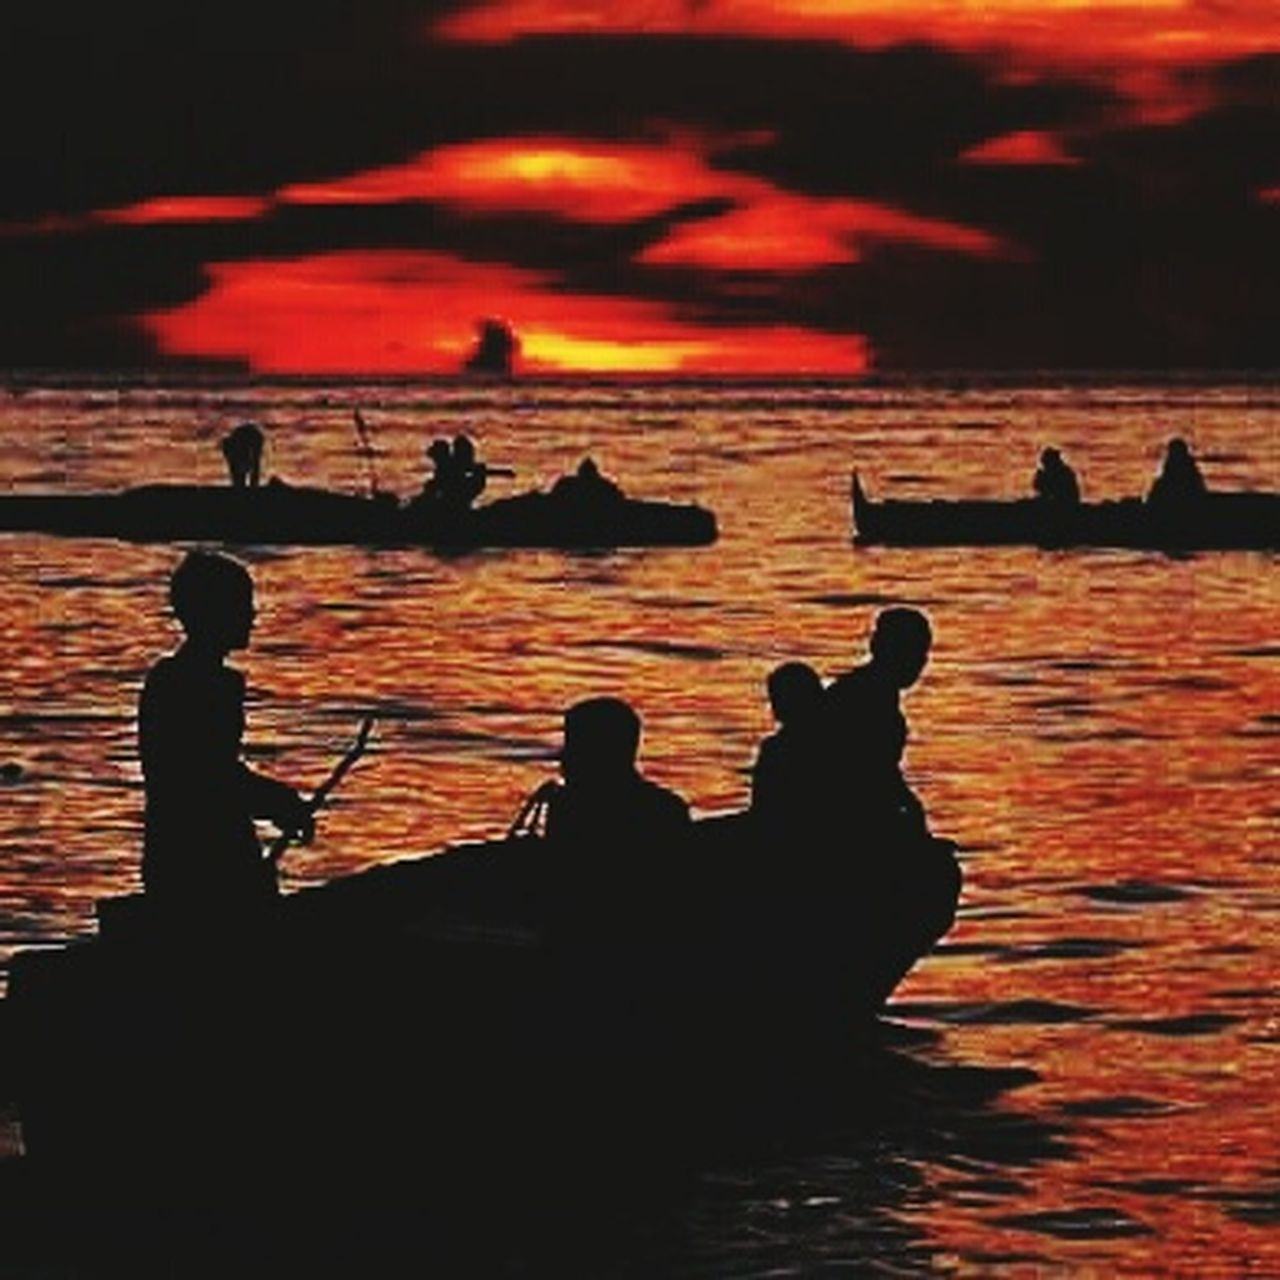 silhouette, sunset, water, sea, nautical vessel, outdoors, travel destinations, scenics, nature, vacations, beach, men, adult, people, beauty in nature, gondola - traditional boat, sky, one person, only men, one man only, day